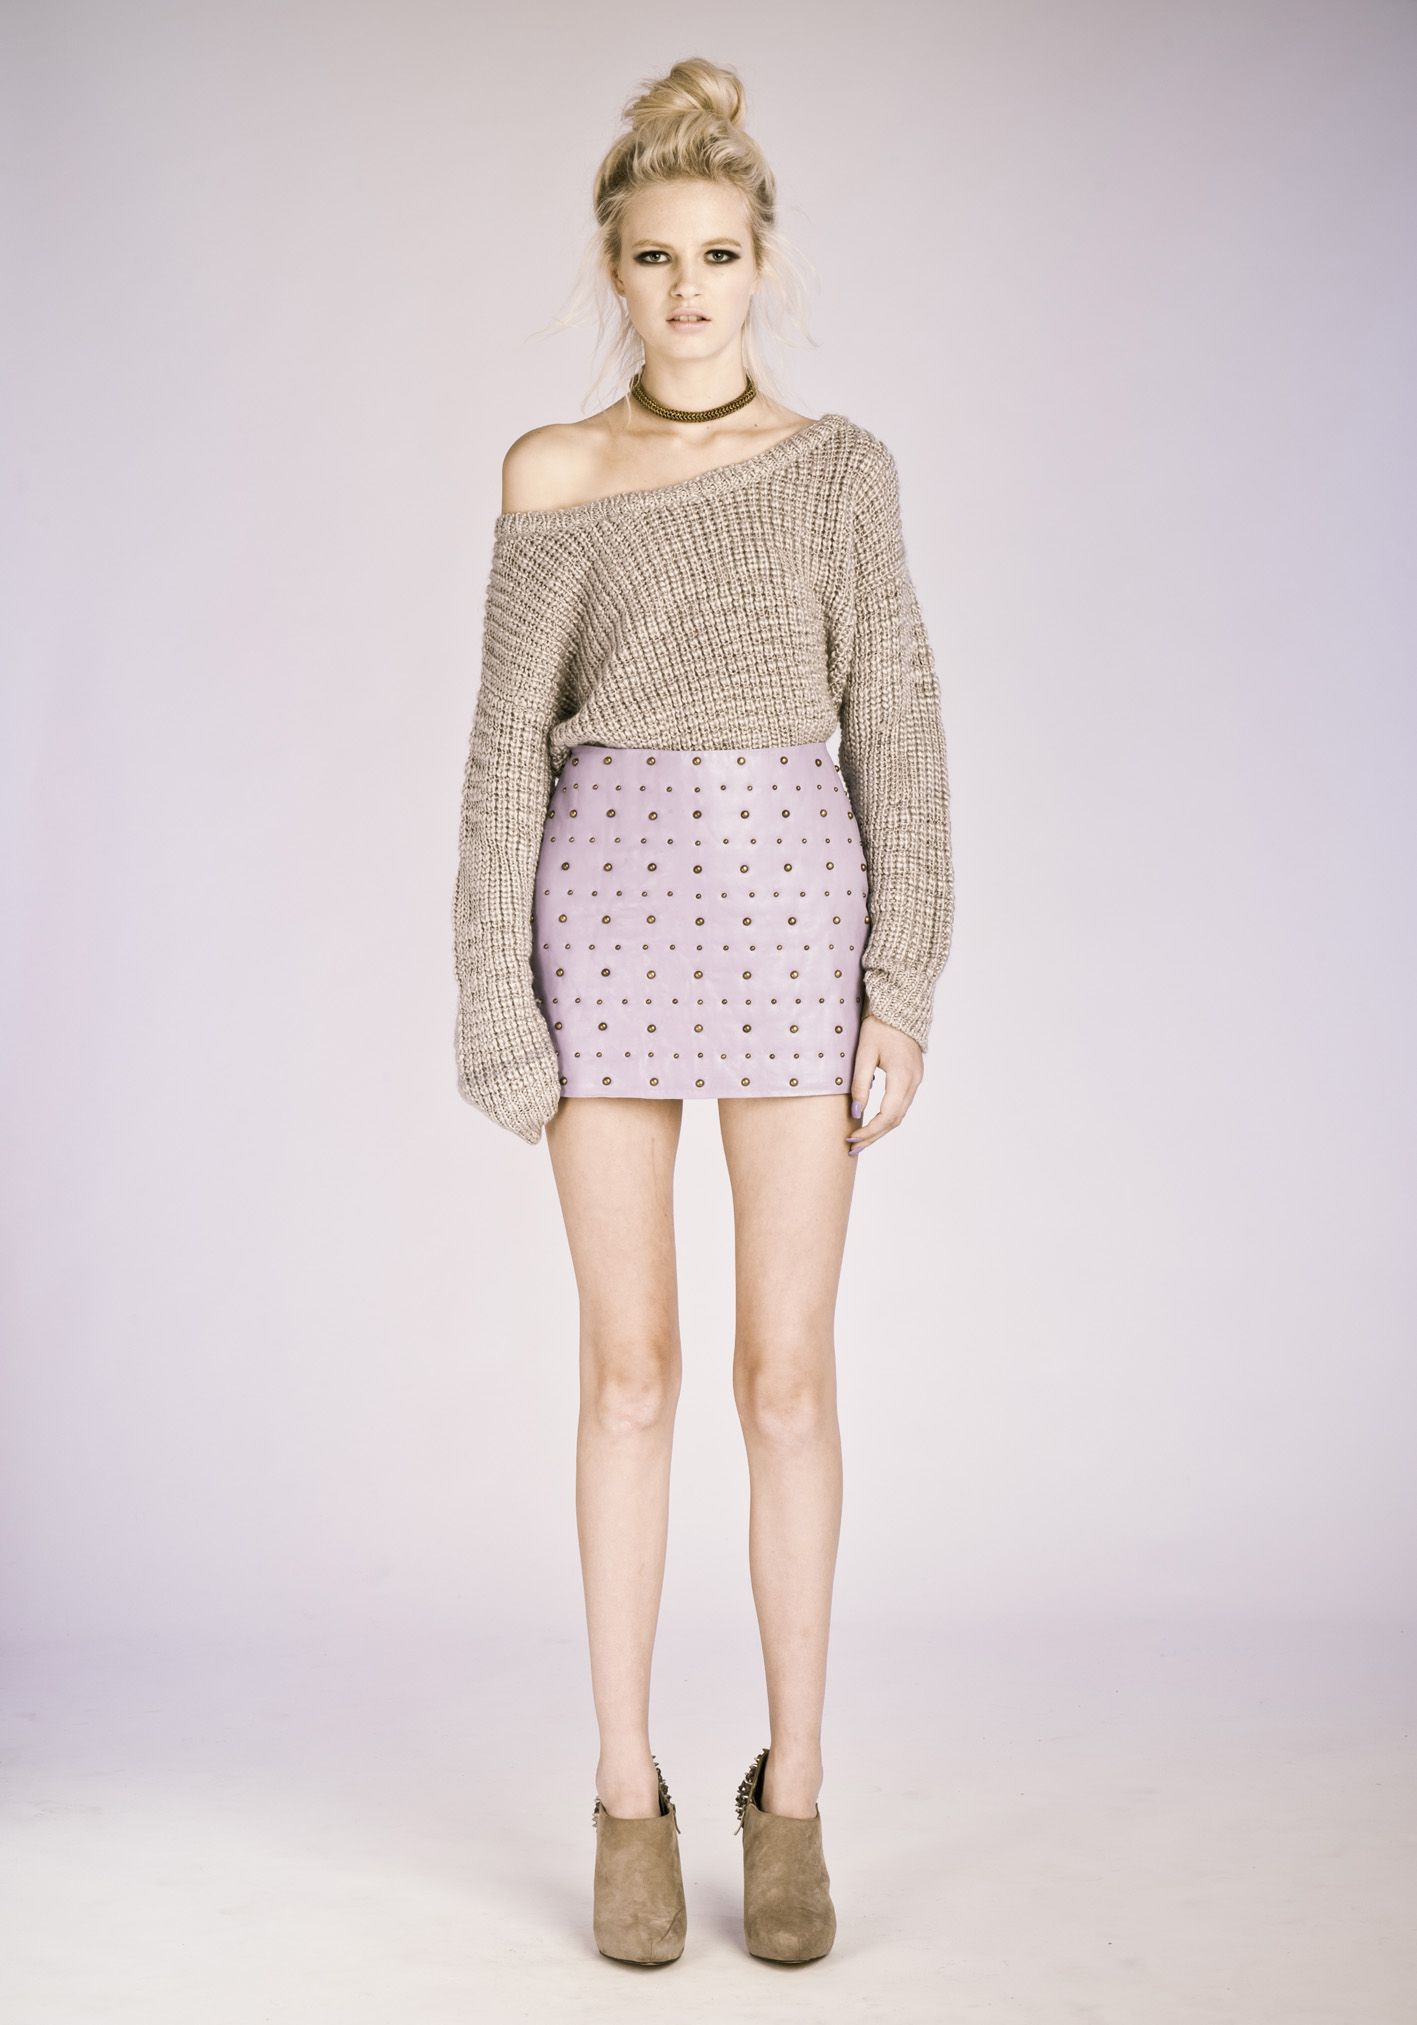 THE WANDERERS KNIT JUMPER  Coming to Jade Emily Soon  www.jadeemily.com.au